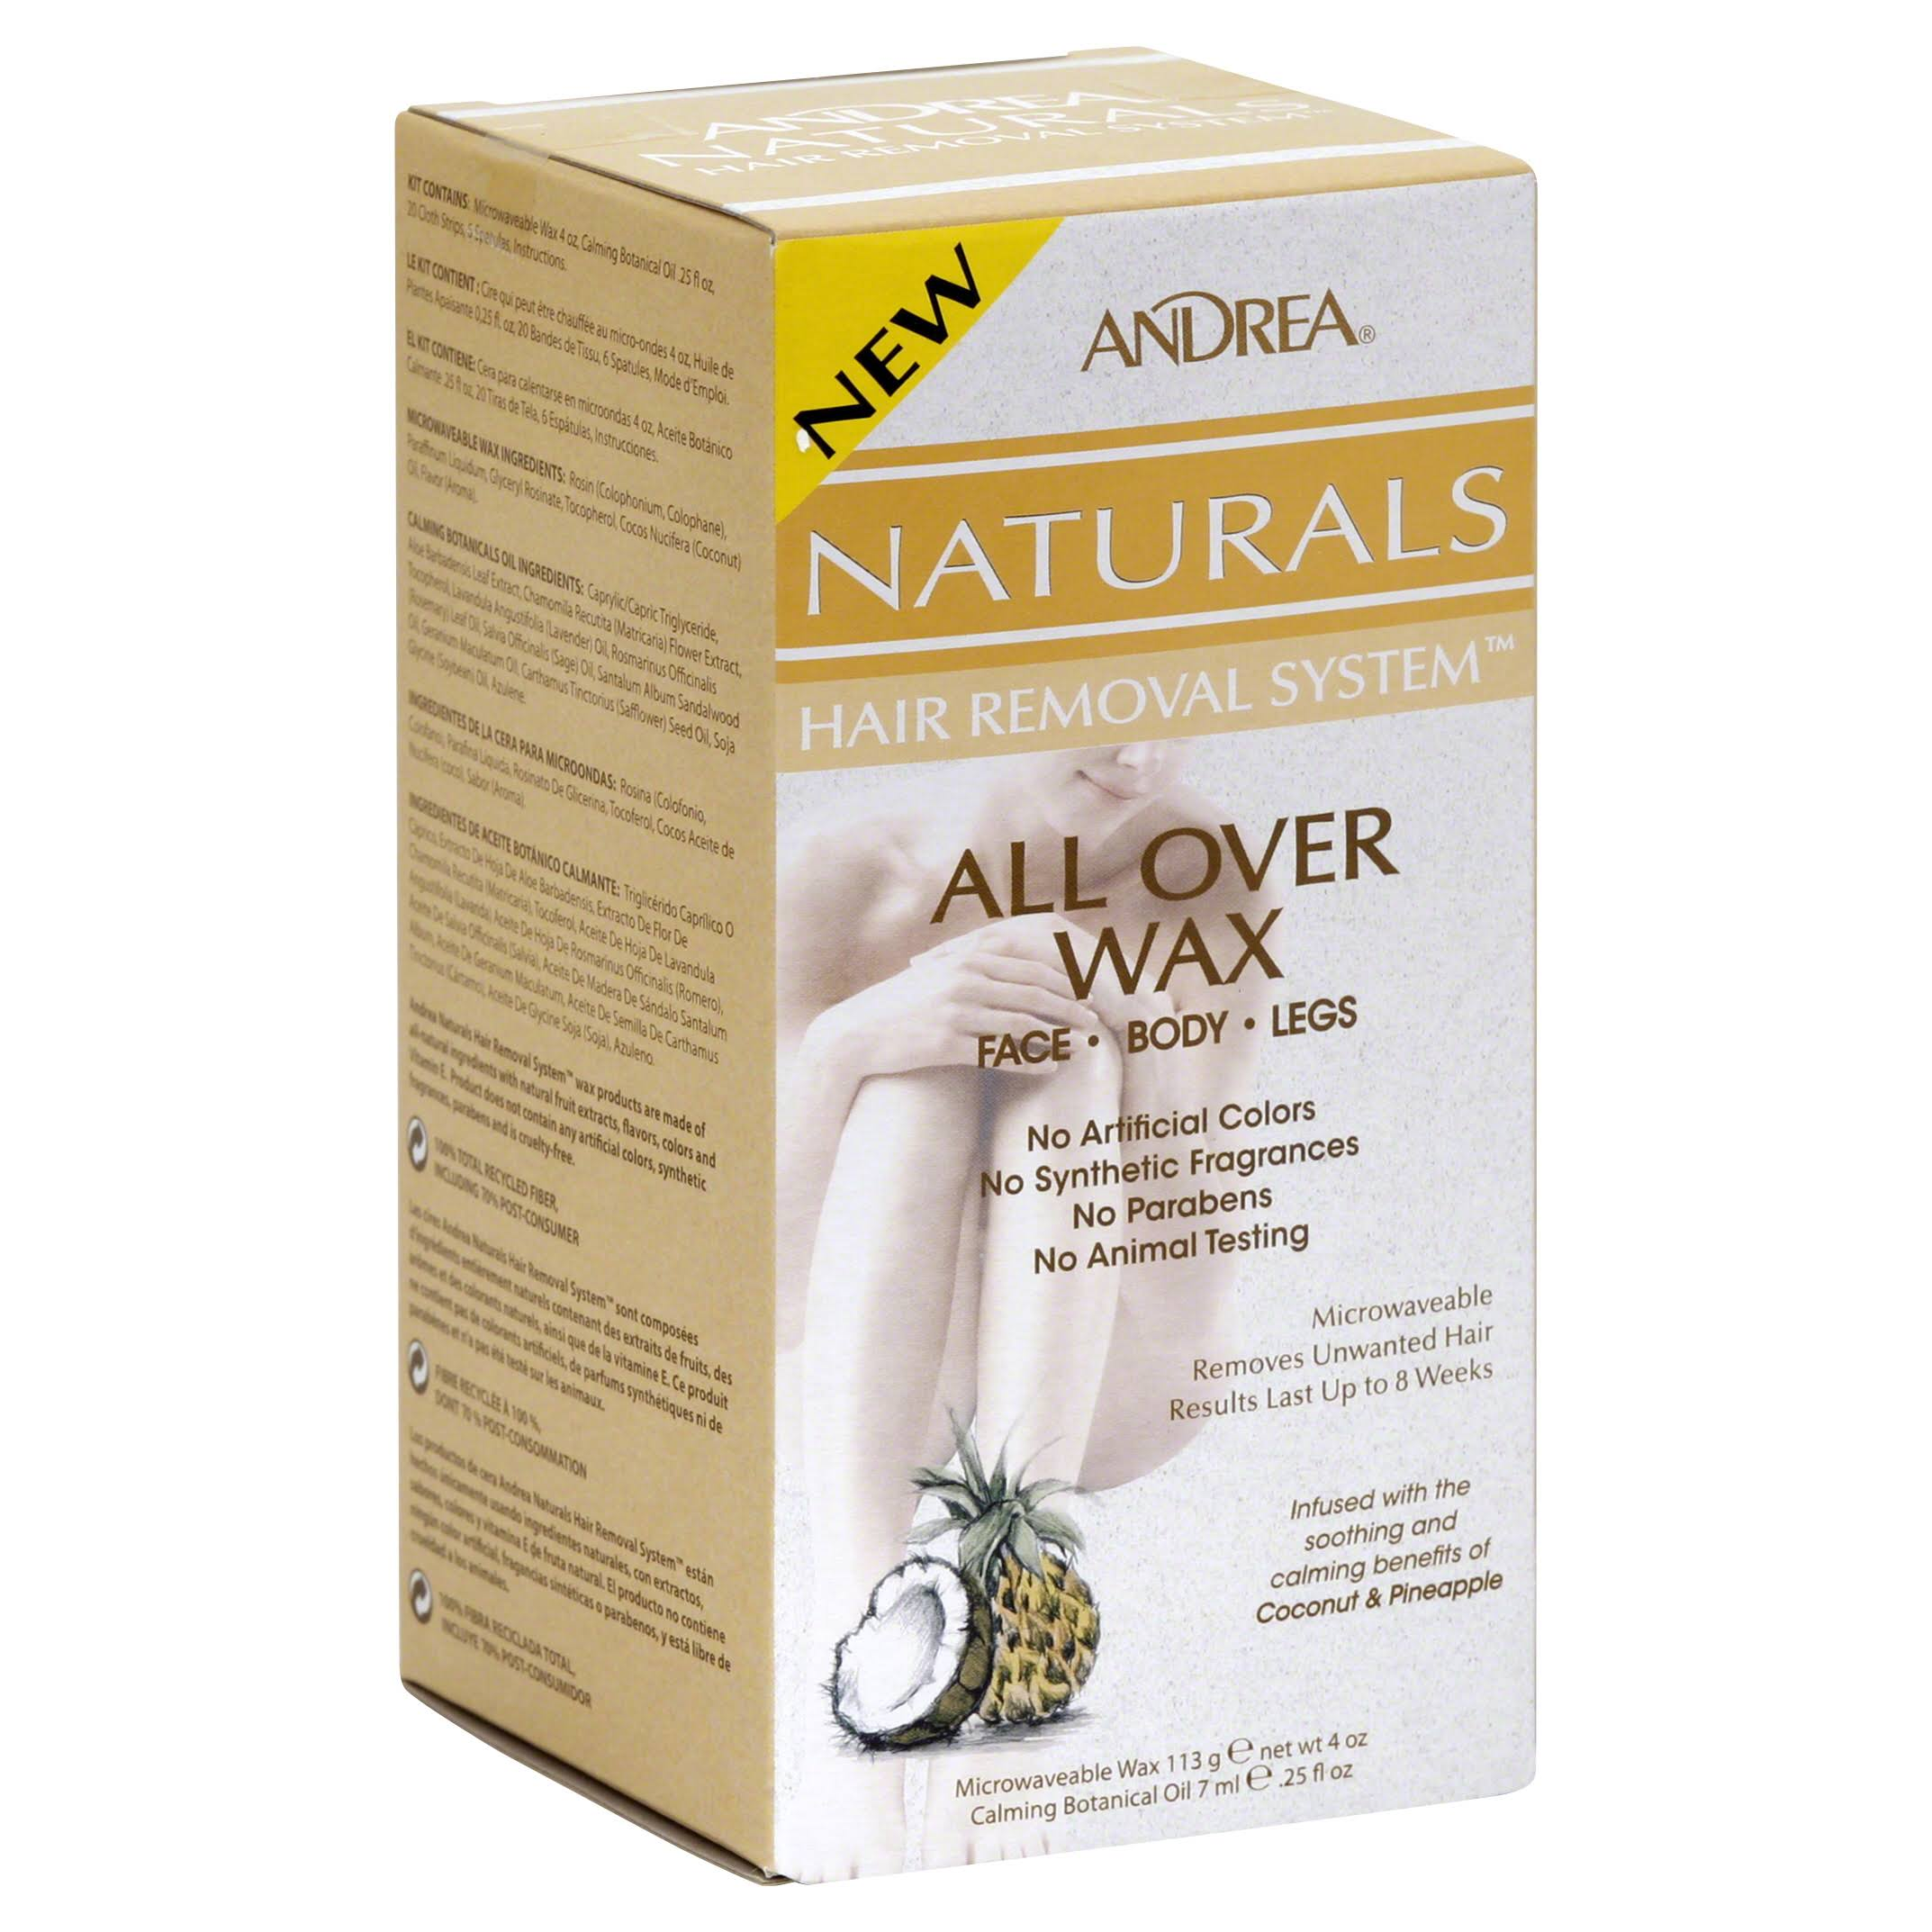 Andrea Naturals All Over Wax Hair Removal System - Coconut Pineapple